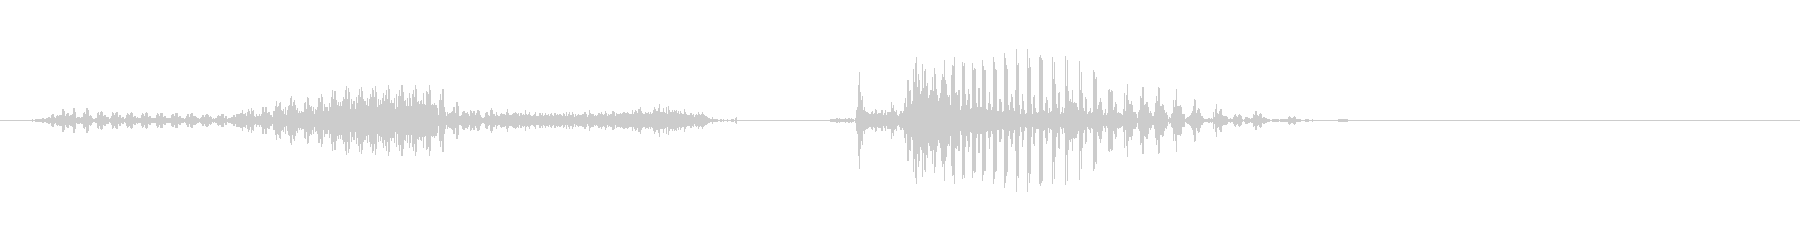 Gifu Prefecture's unreproduced waveform